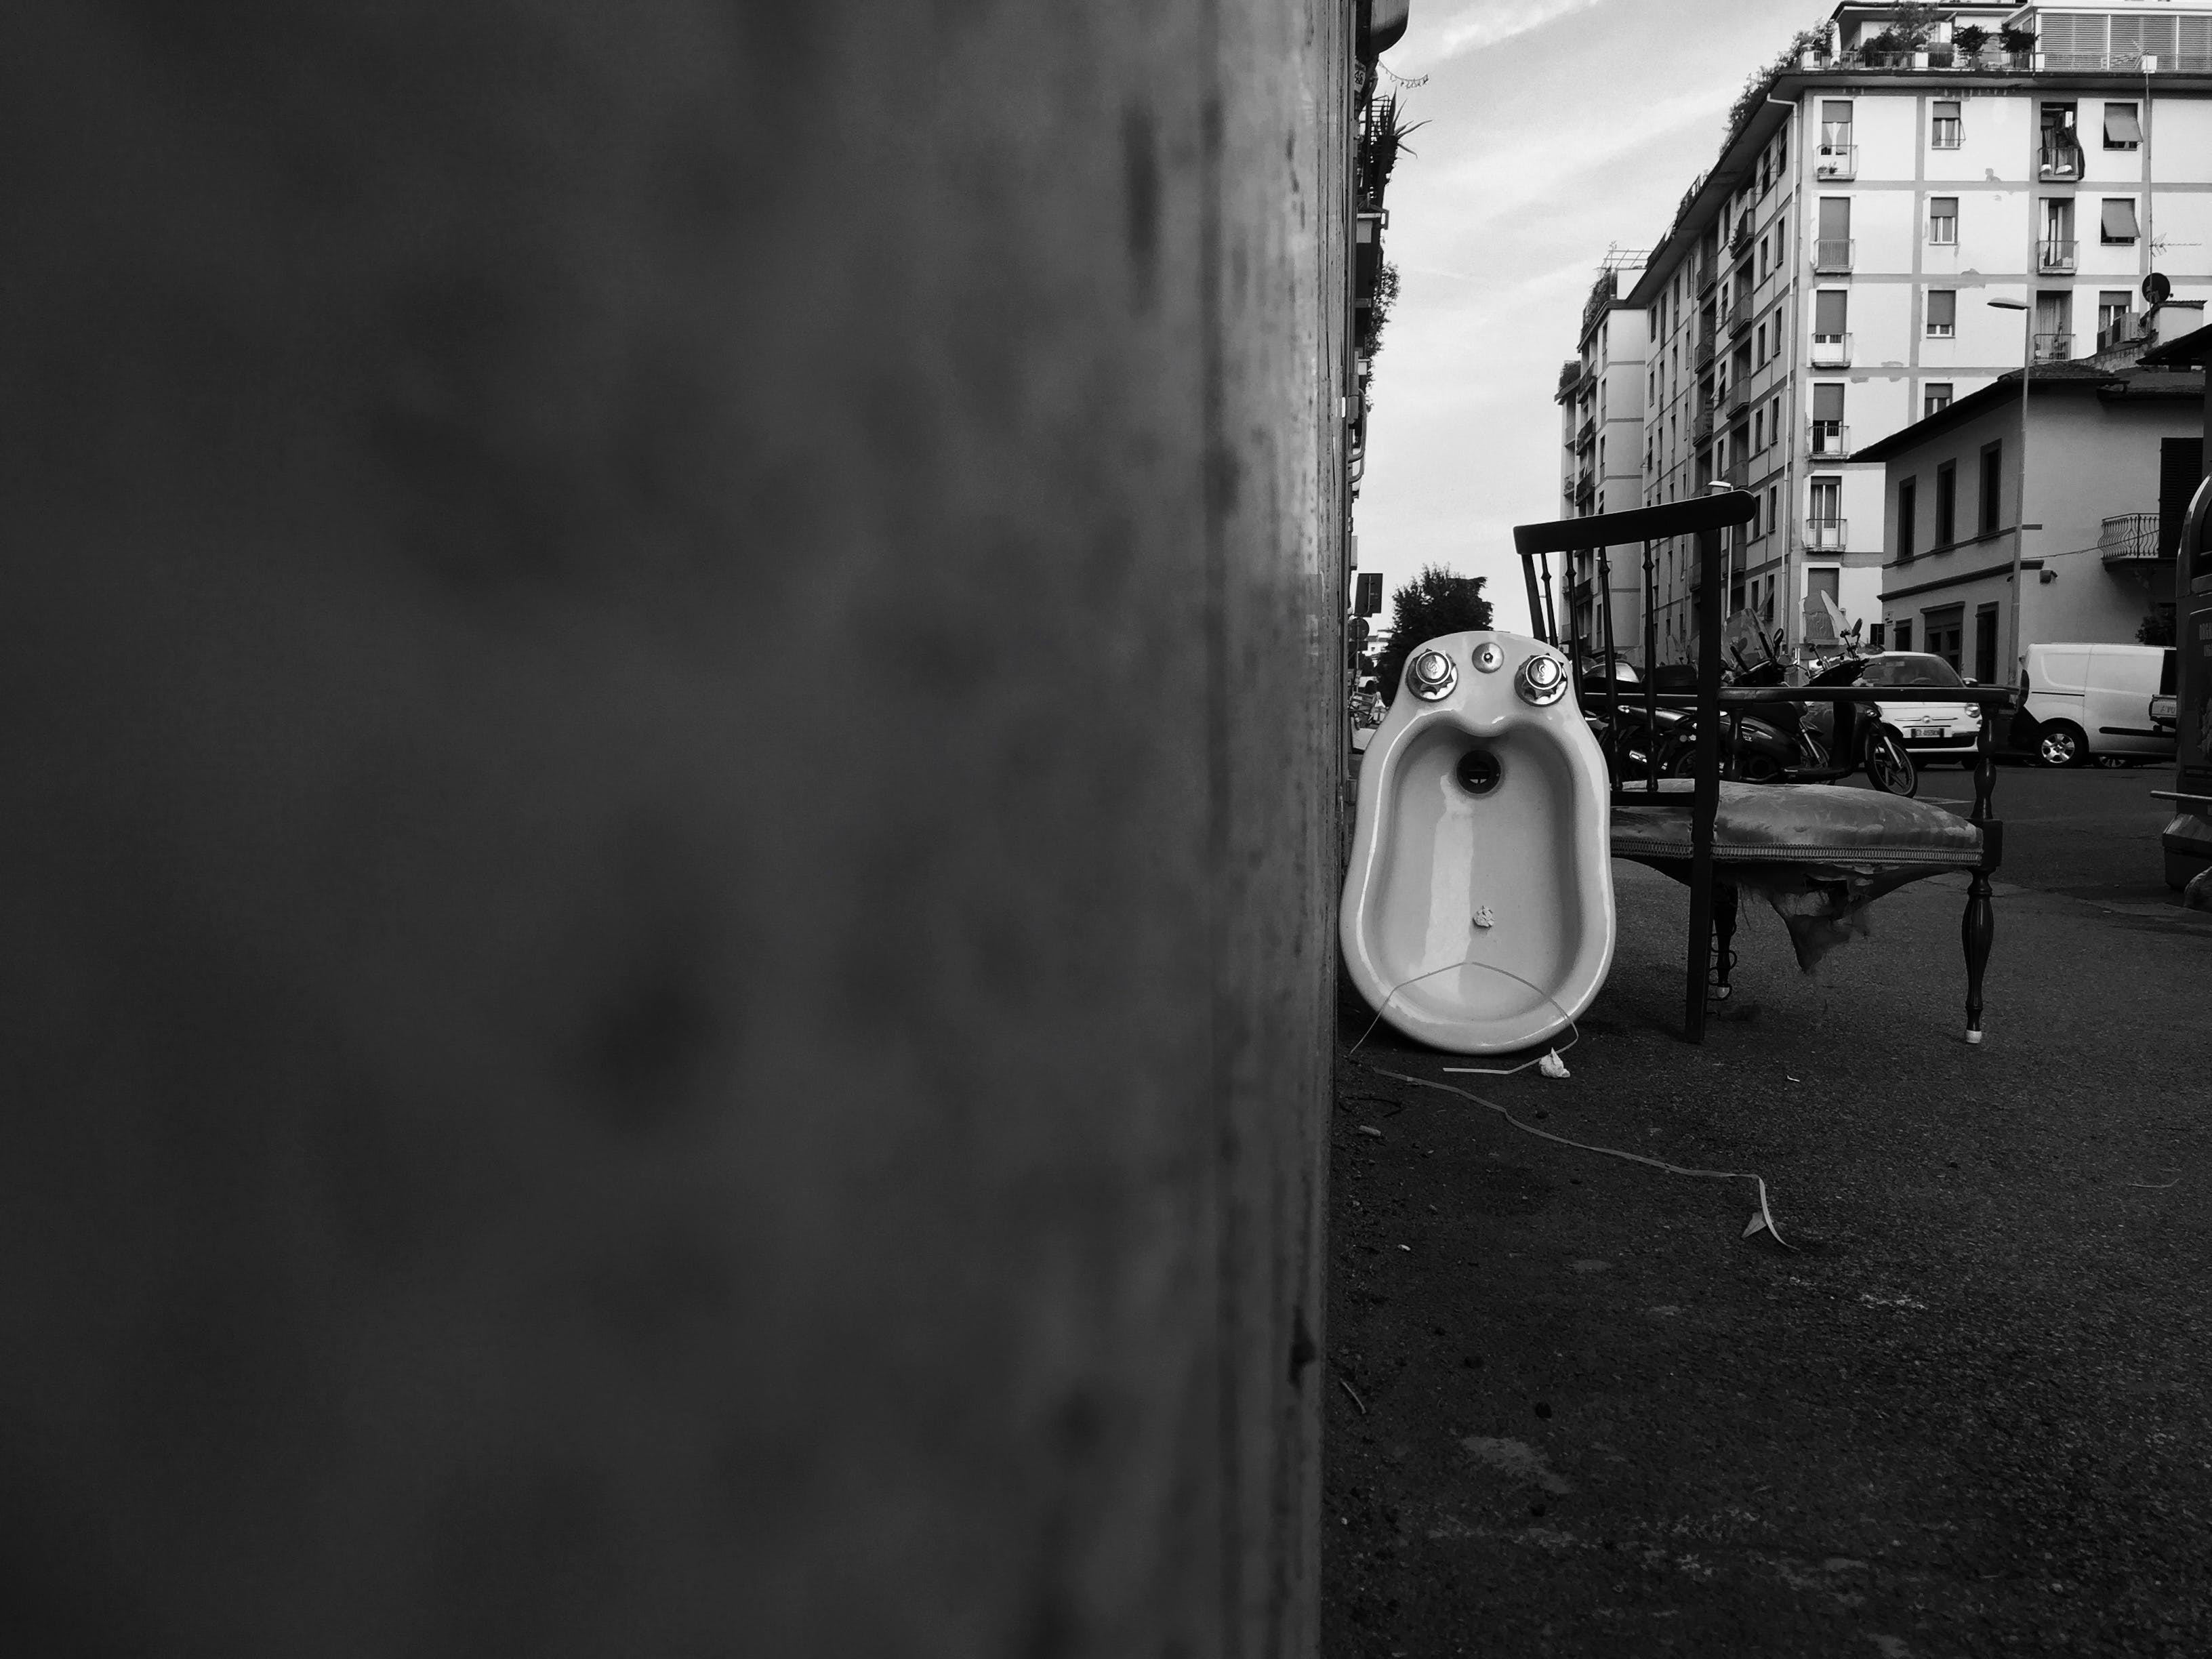 Free stock photo of city, trash, walking by the city